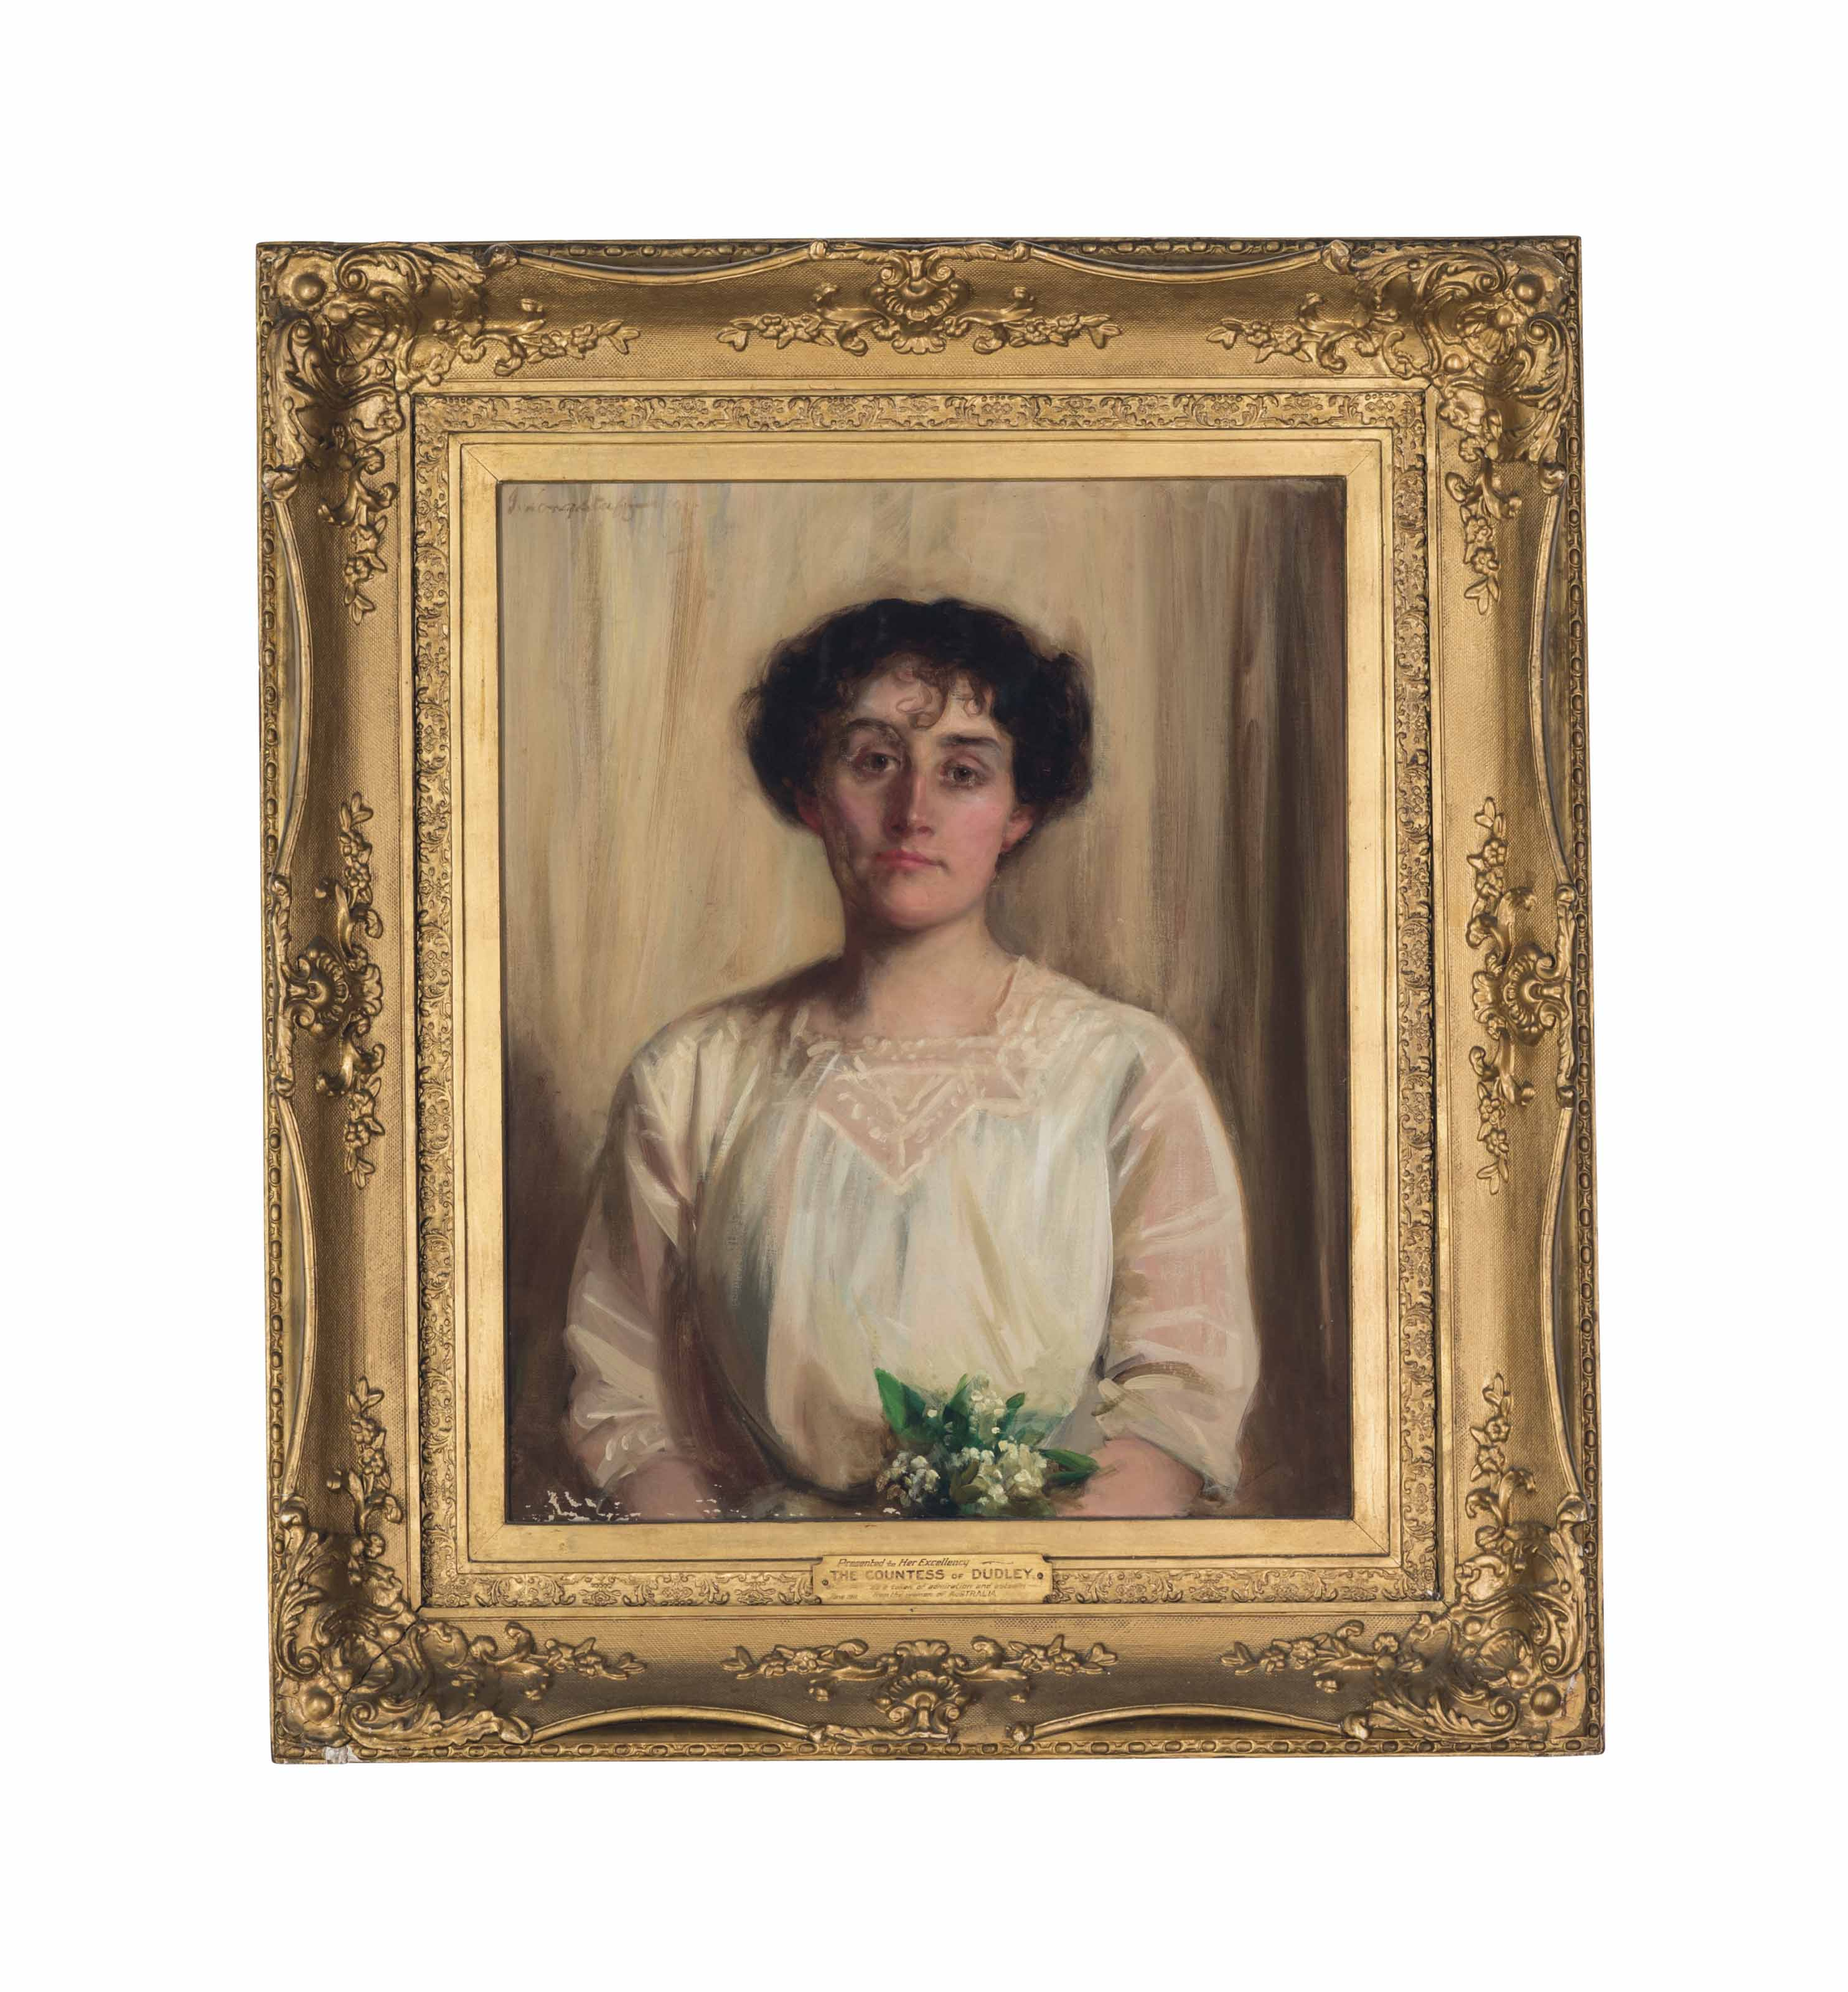 Portrait of Rachel, Countess of Dudley, née Gurney (c. 1867-1920), half-length, in a white dress, holding Lily of the valley